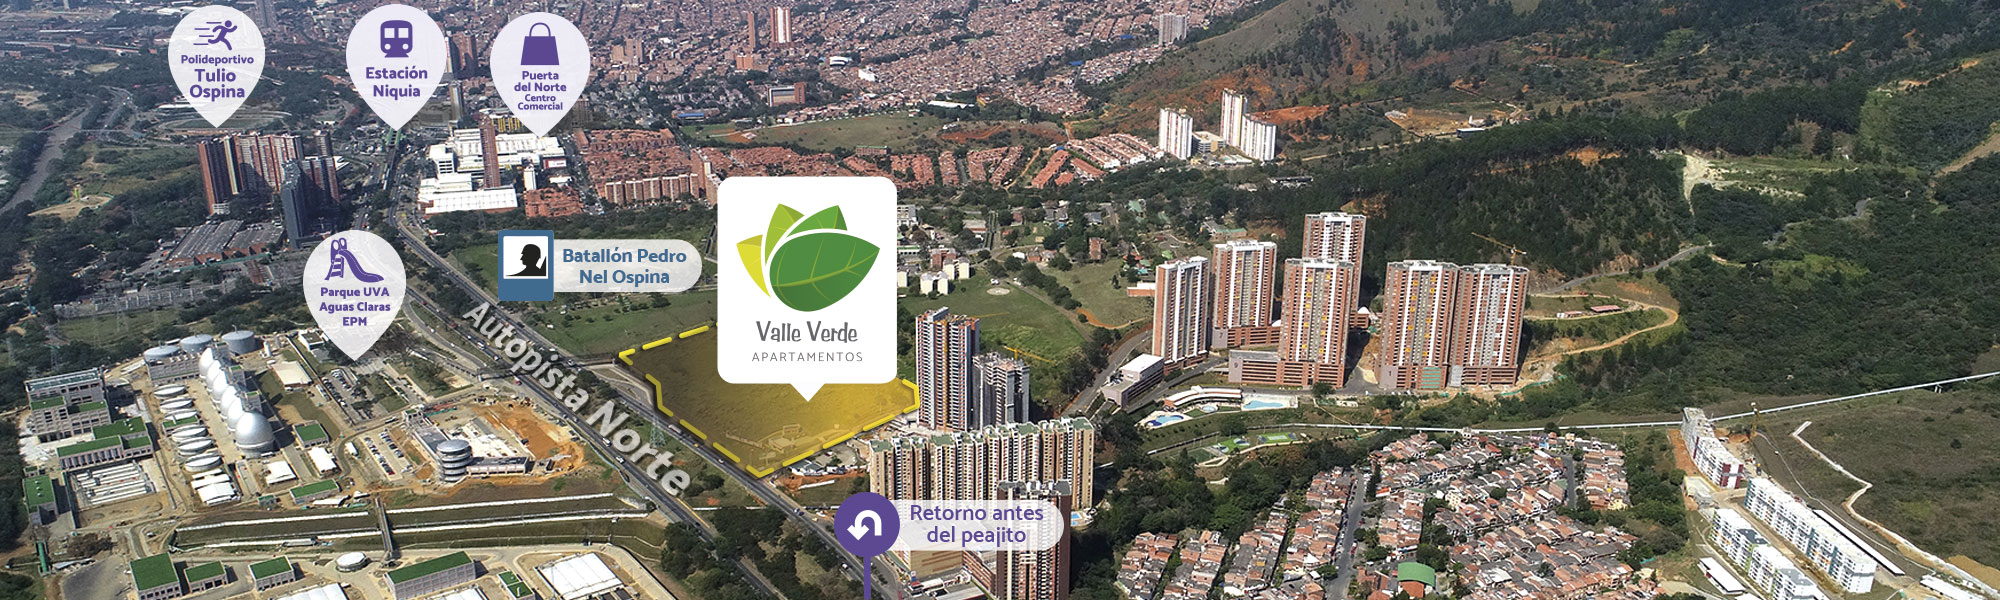 Valle Verde is a residential project located in Bello, Antioquia